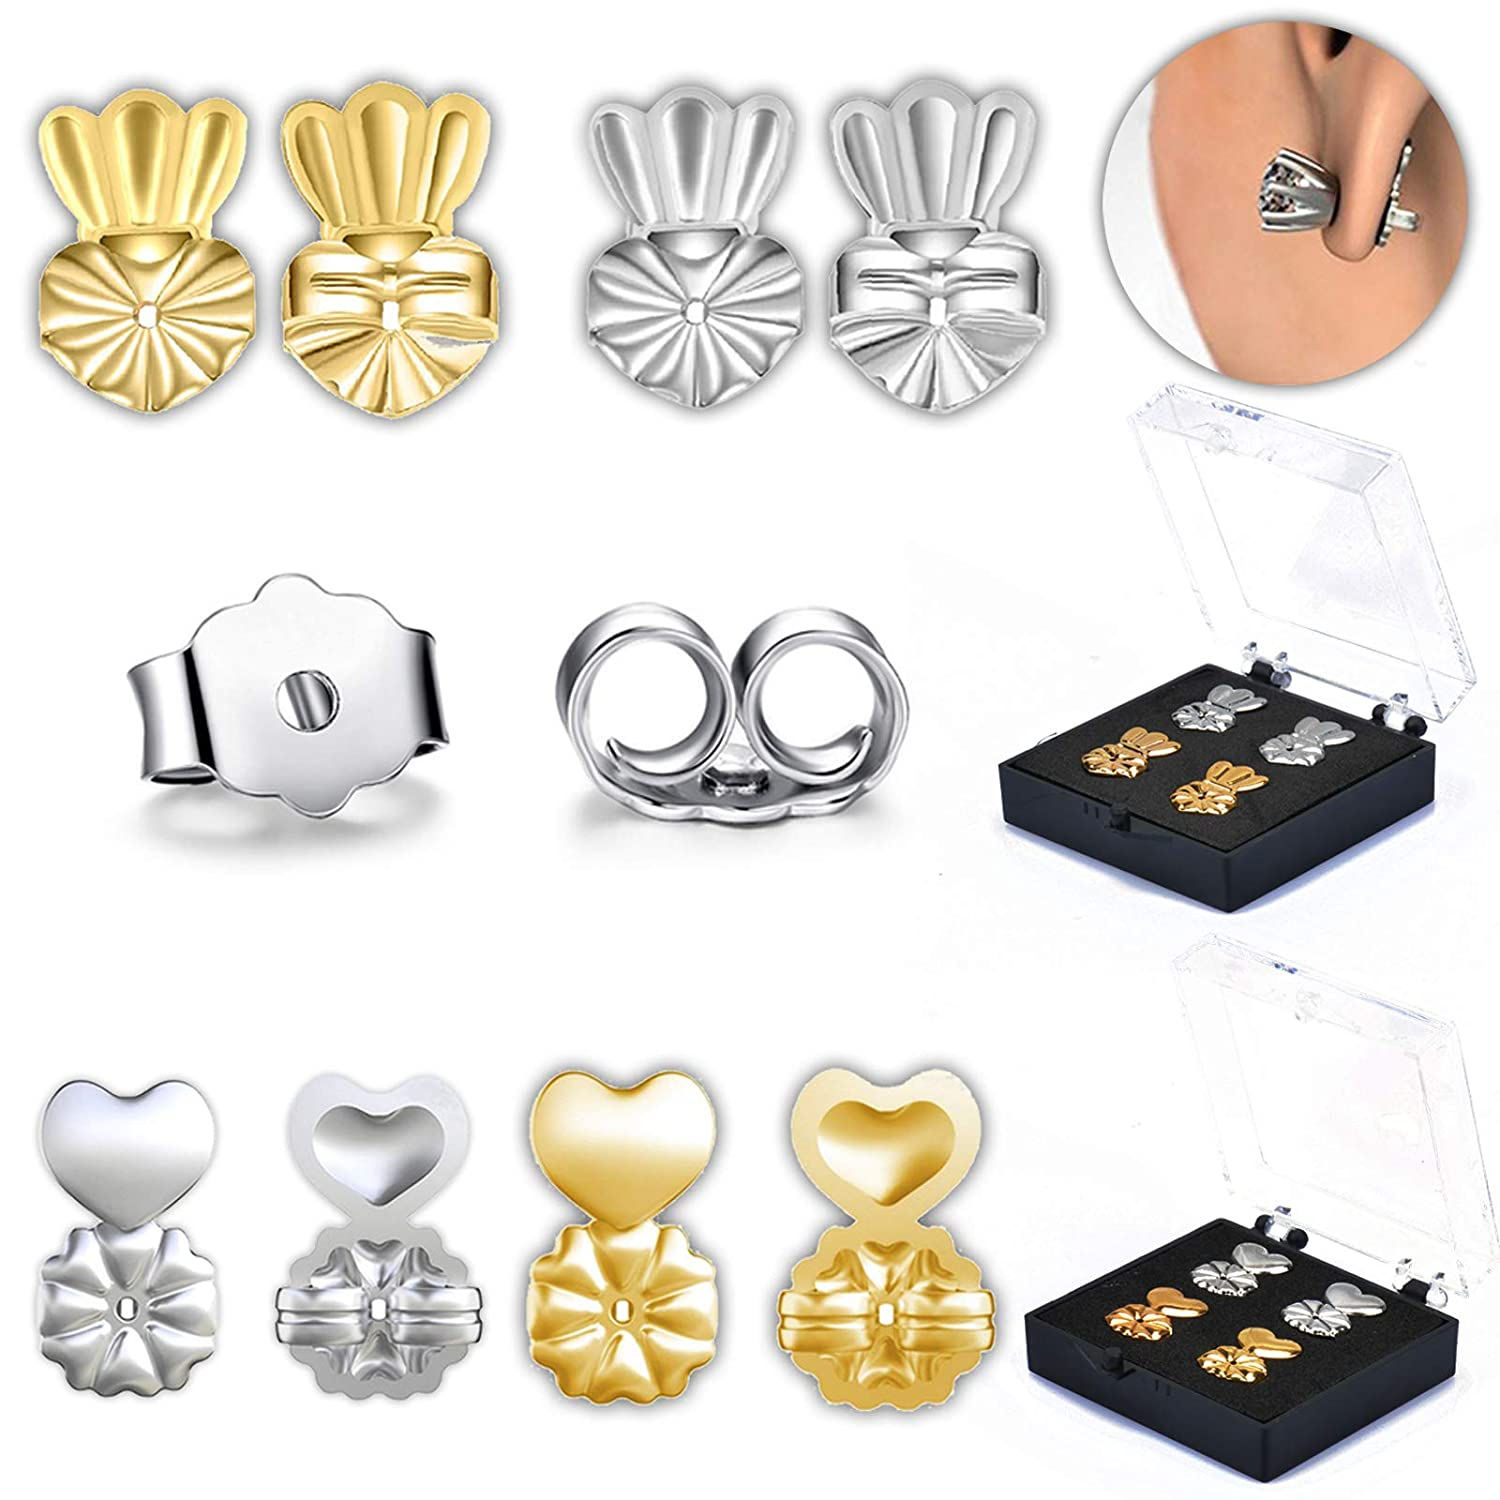 FunSponsor Original Magic Earring Lifters 3 Pairs of Adjustable Earring Lifts (2 Pair of Sterling Silver and 2 Pair of 18K Gold Plated) + Bonus 1 Pair Sterling Earring Backs